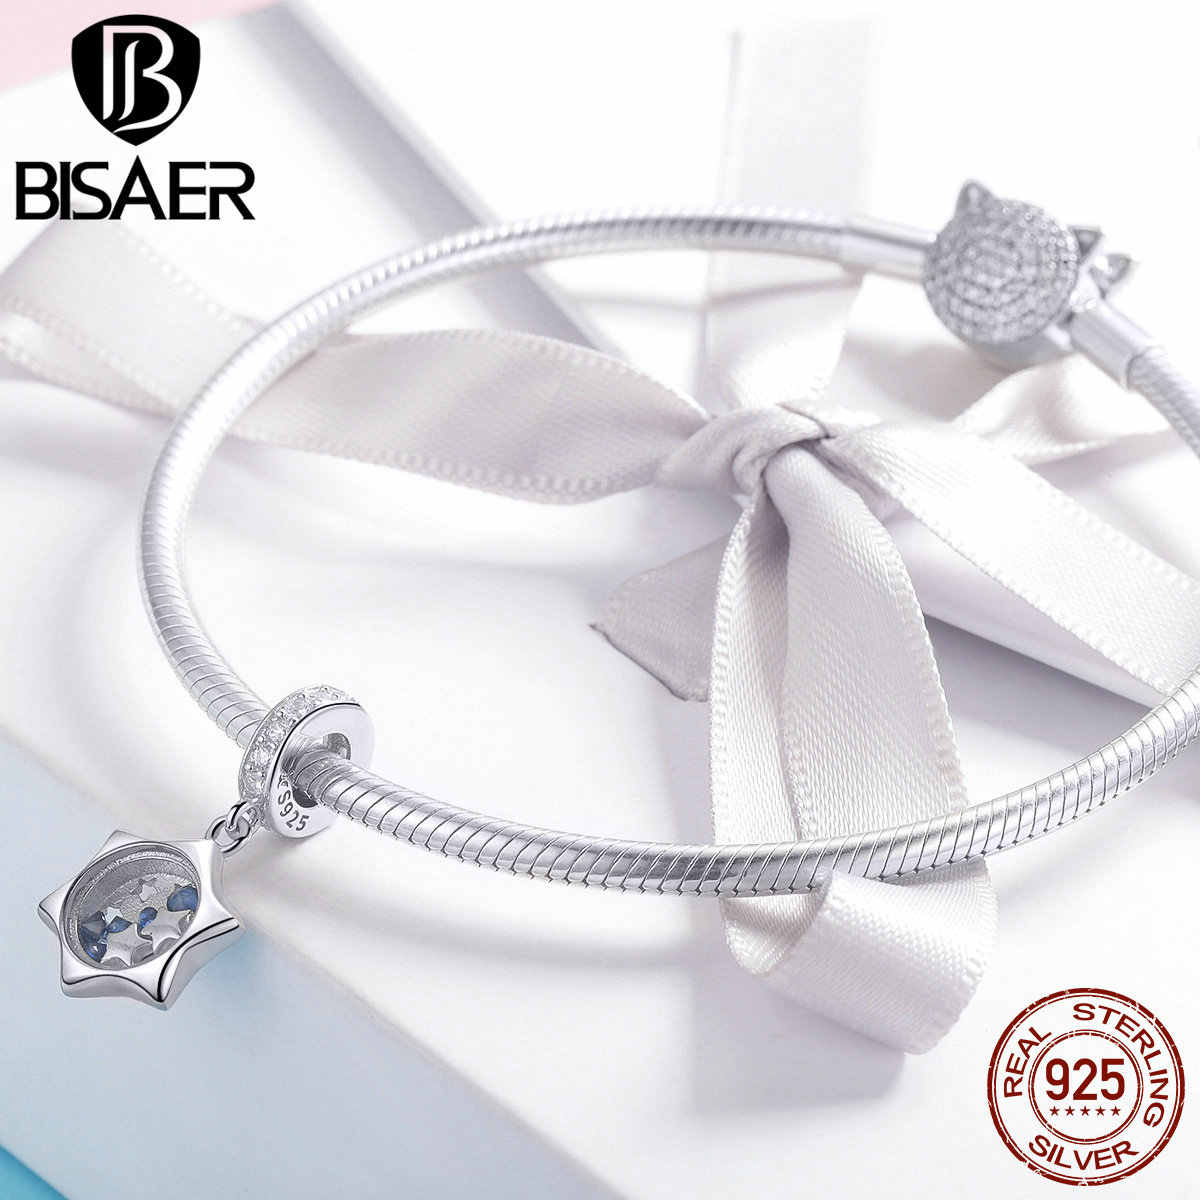 BISAER 925 Sterling Silver Blue Cubic Zirconia Stone Stone Pendant Charm for Women Jewelry Making Bracelet or Necklace GXC1083